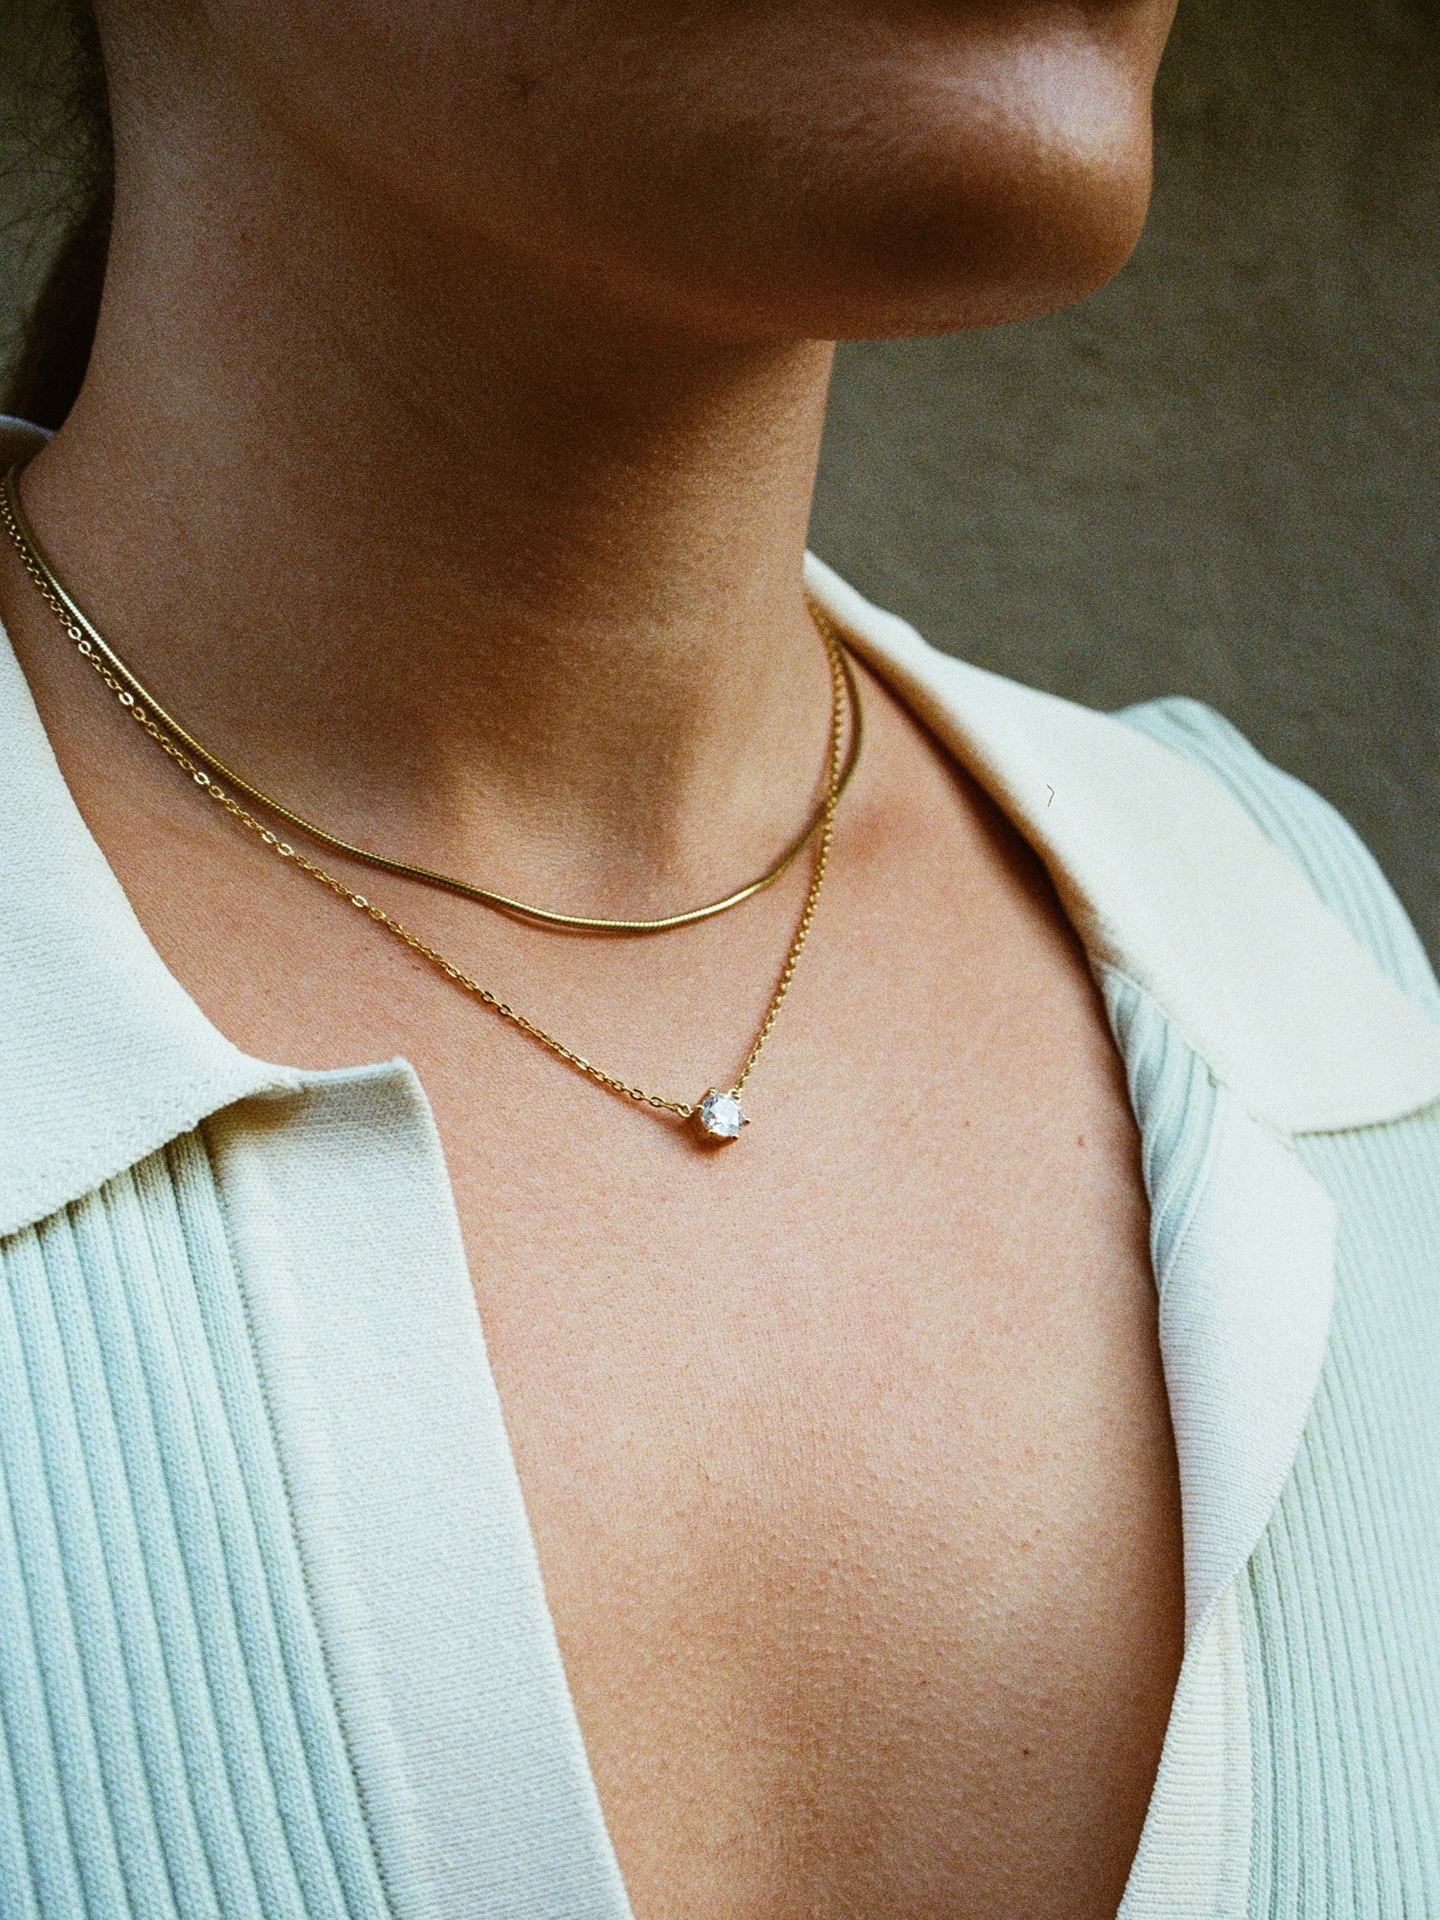 Neat Necklace